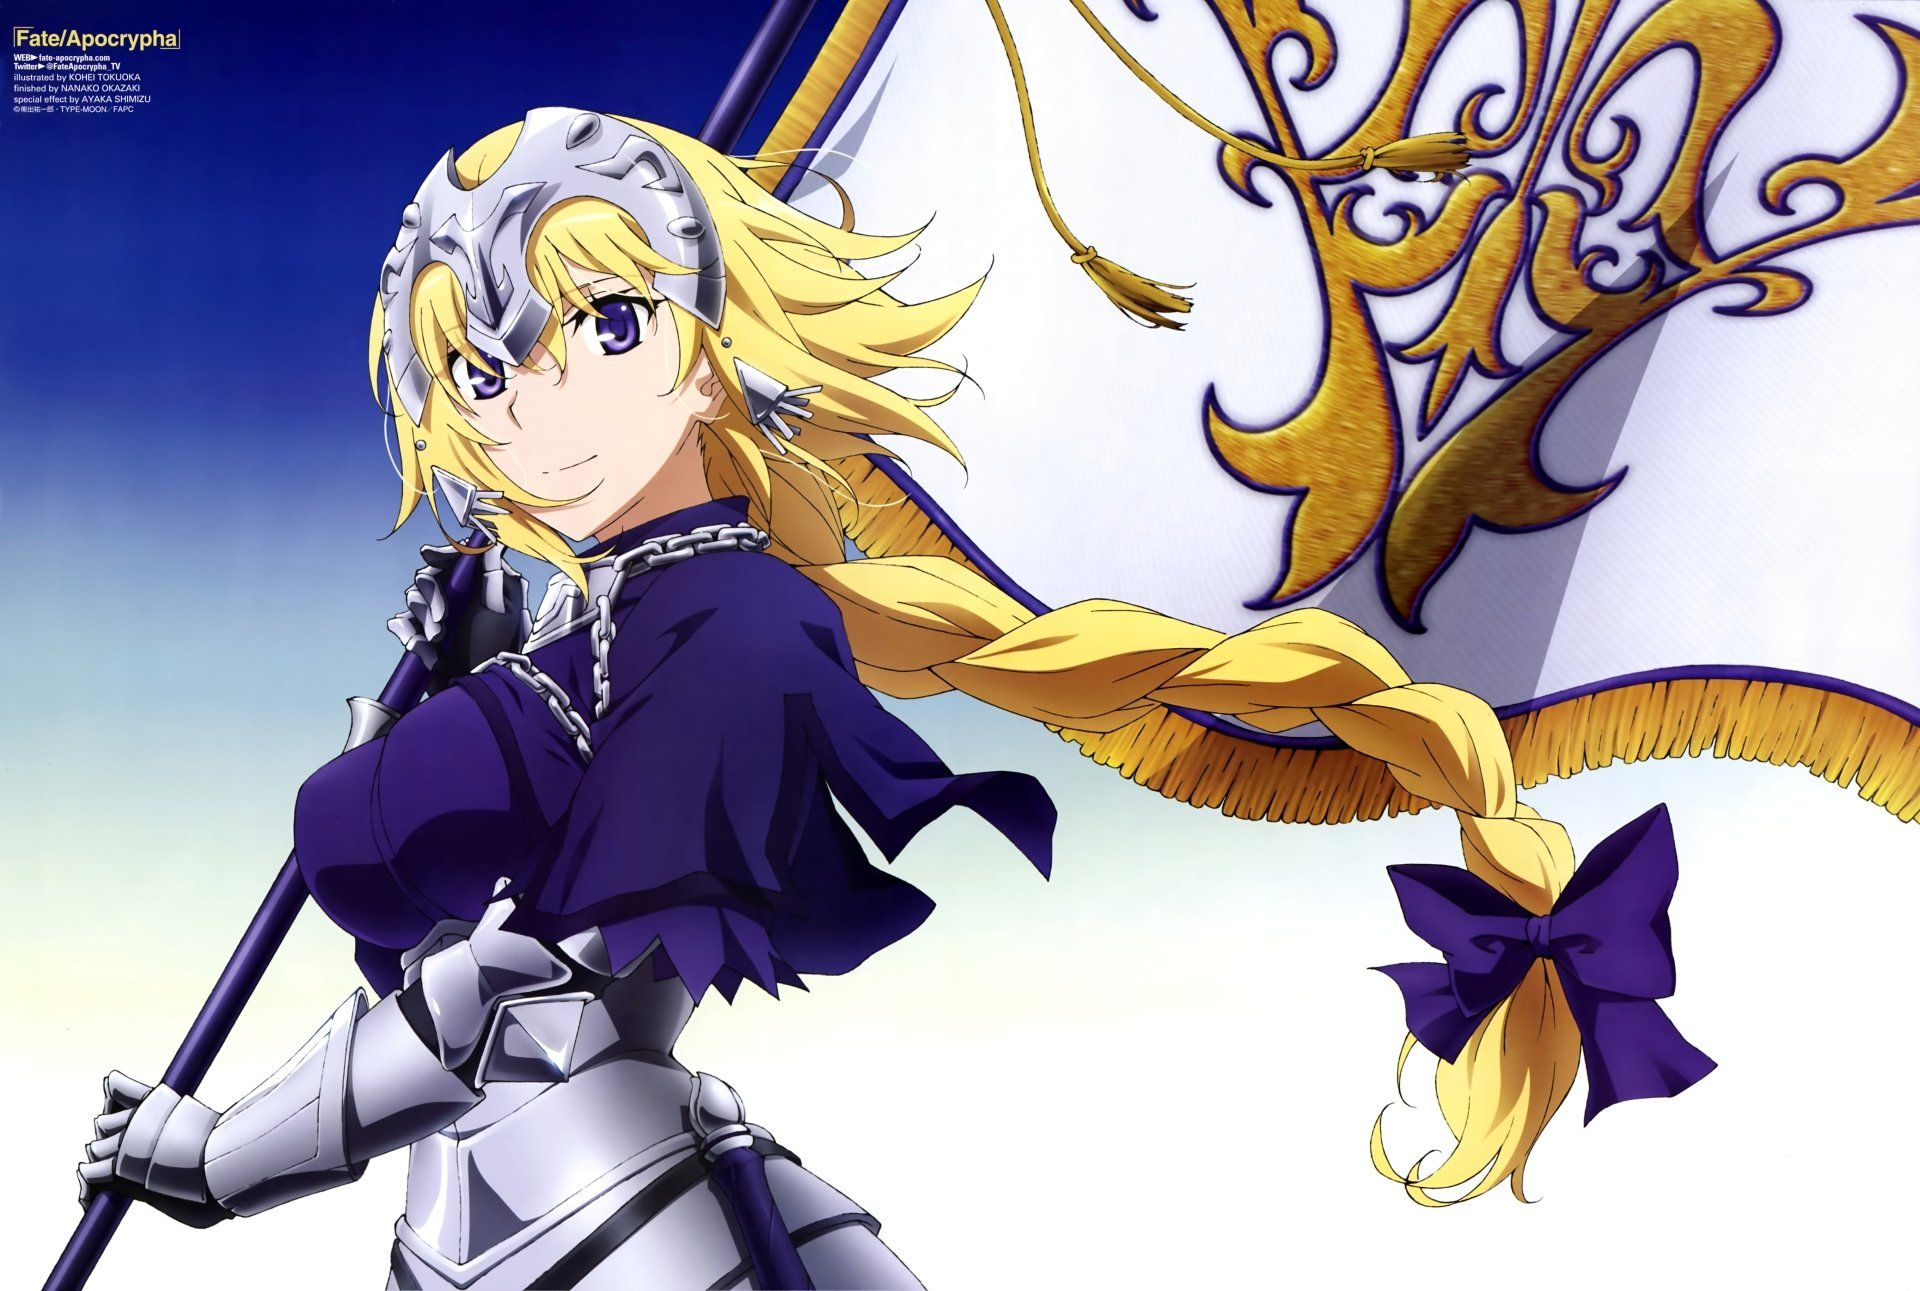 Anime Fateapocrypha Ruler Fateapocrypha Wallpaper Fate